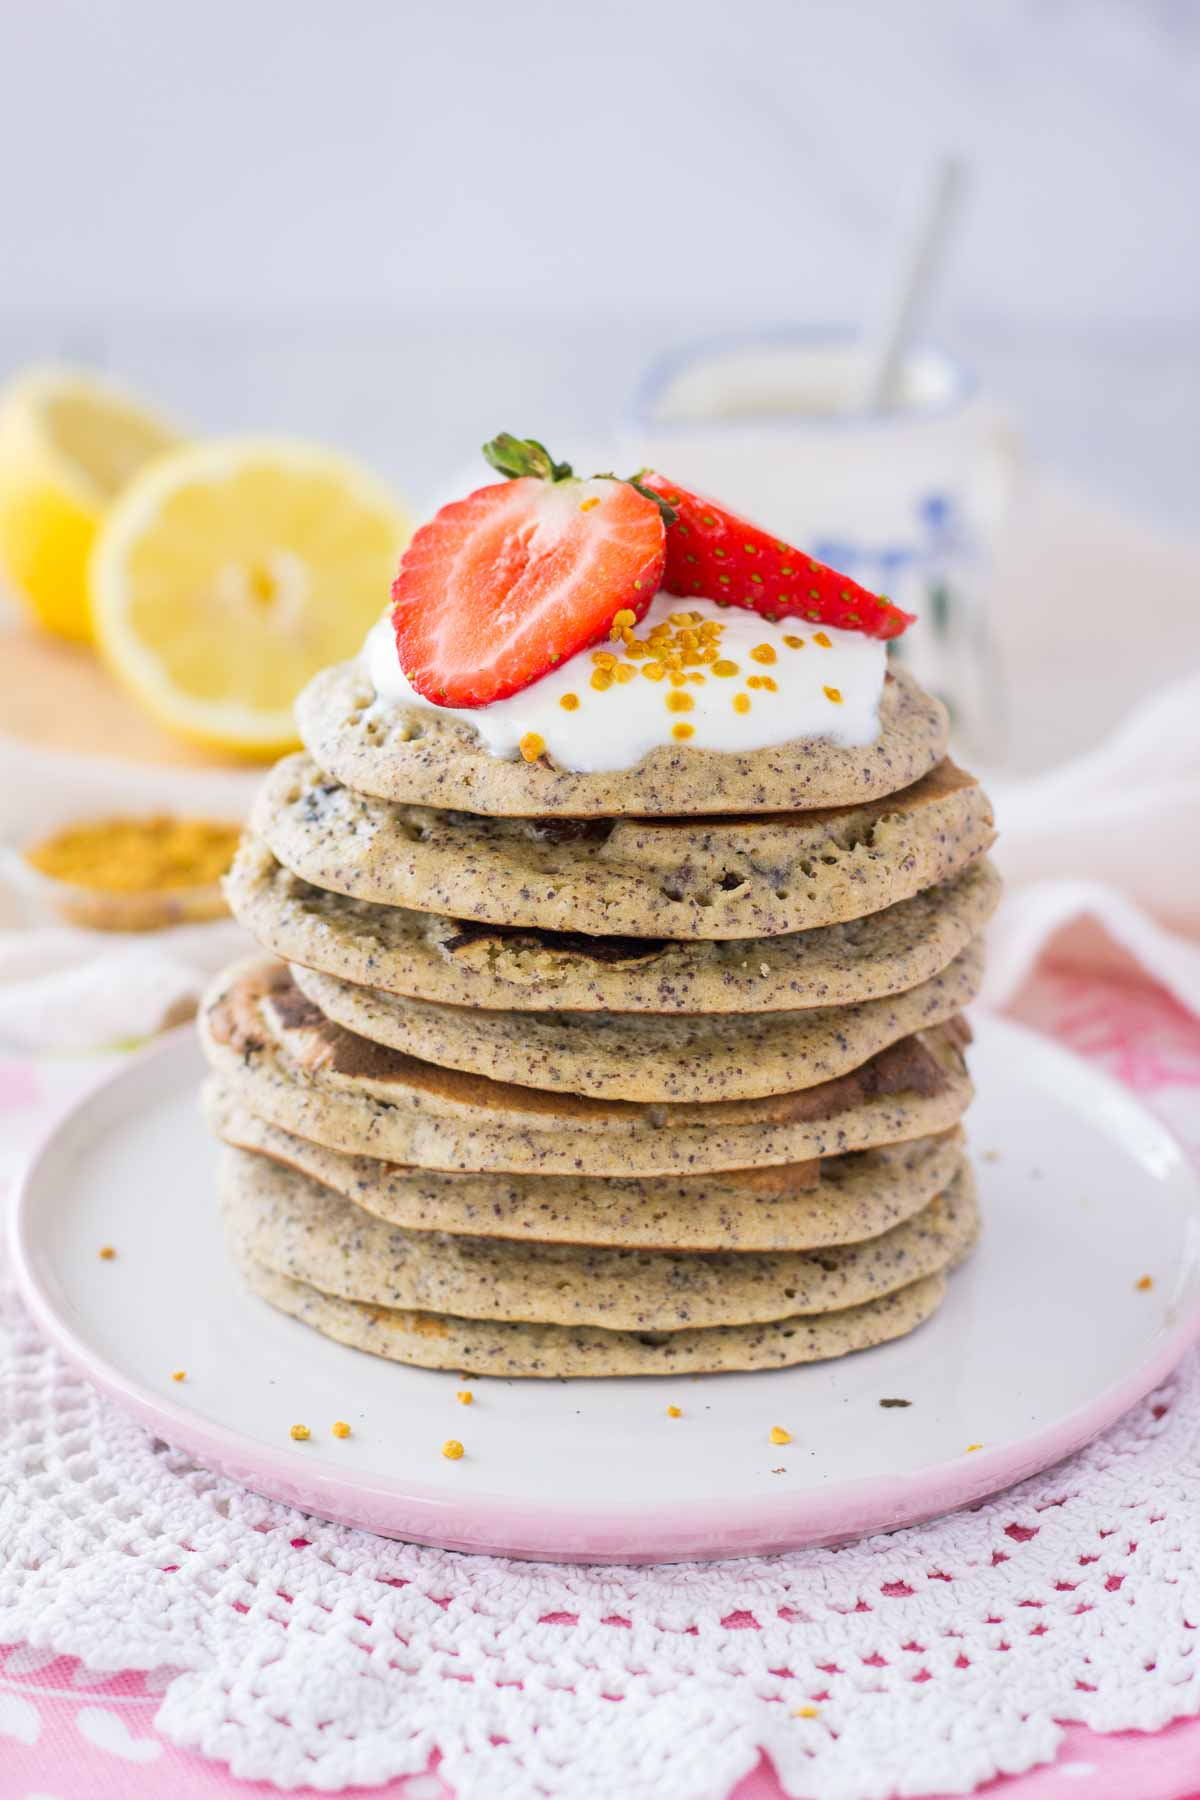 Lemon poppyseed pancakes served on a plate topped with yogurt and strawberries.